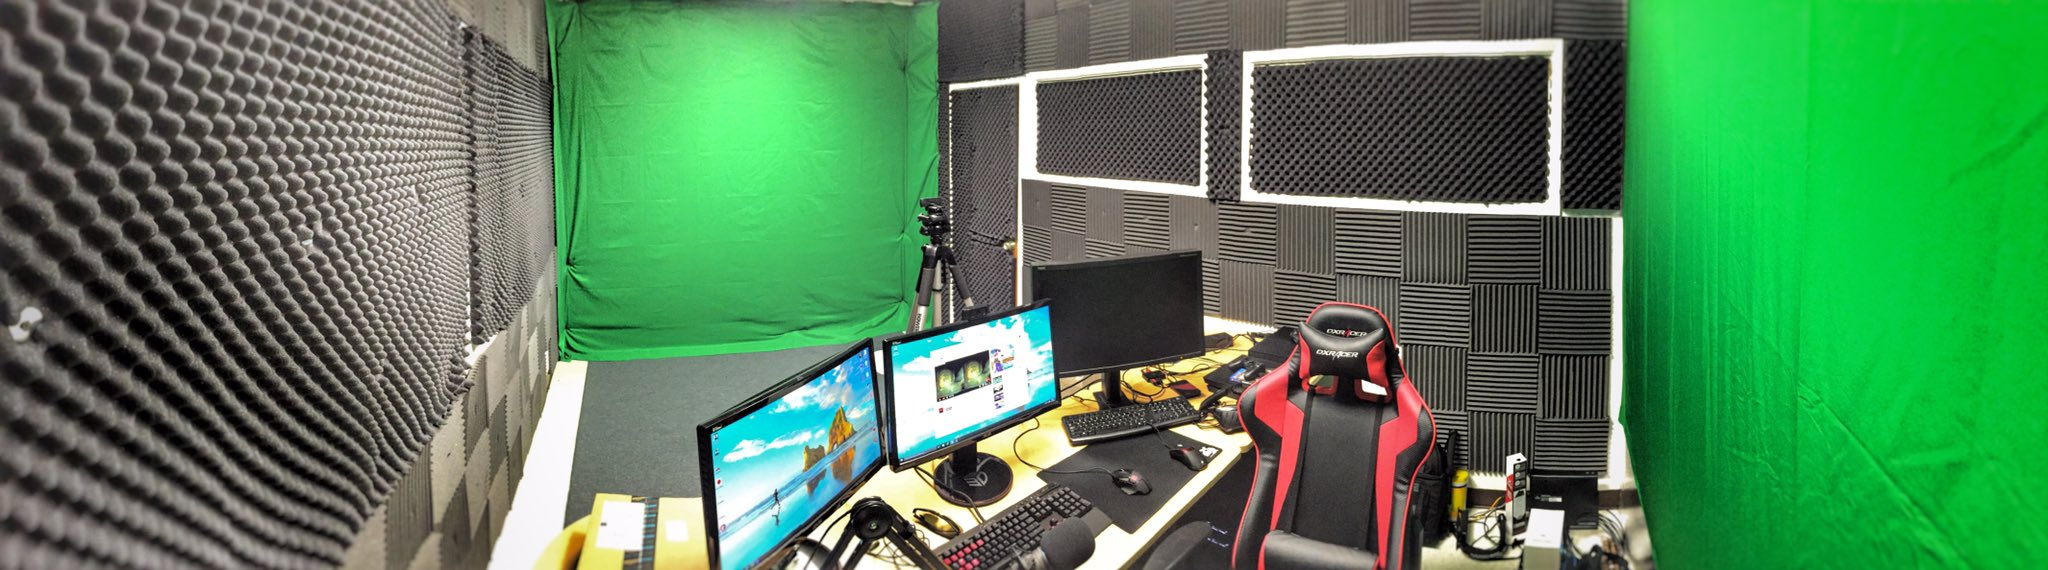 Green Screen A Room